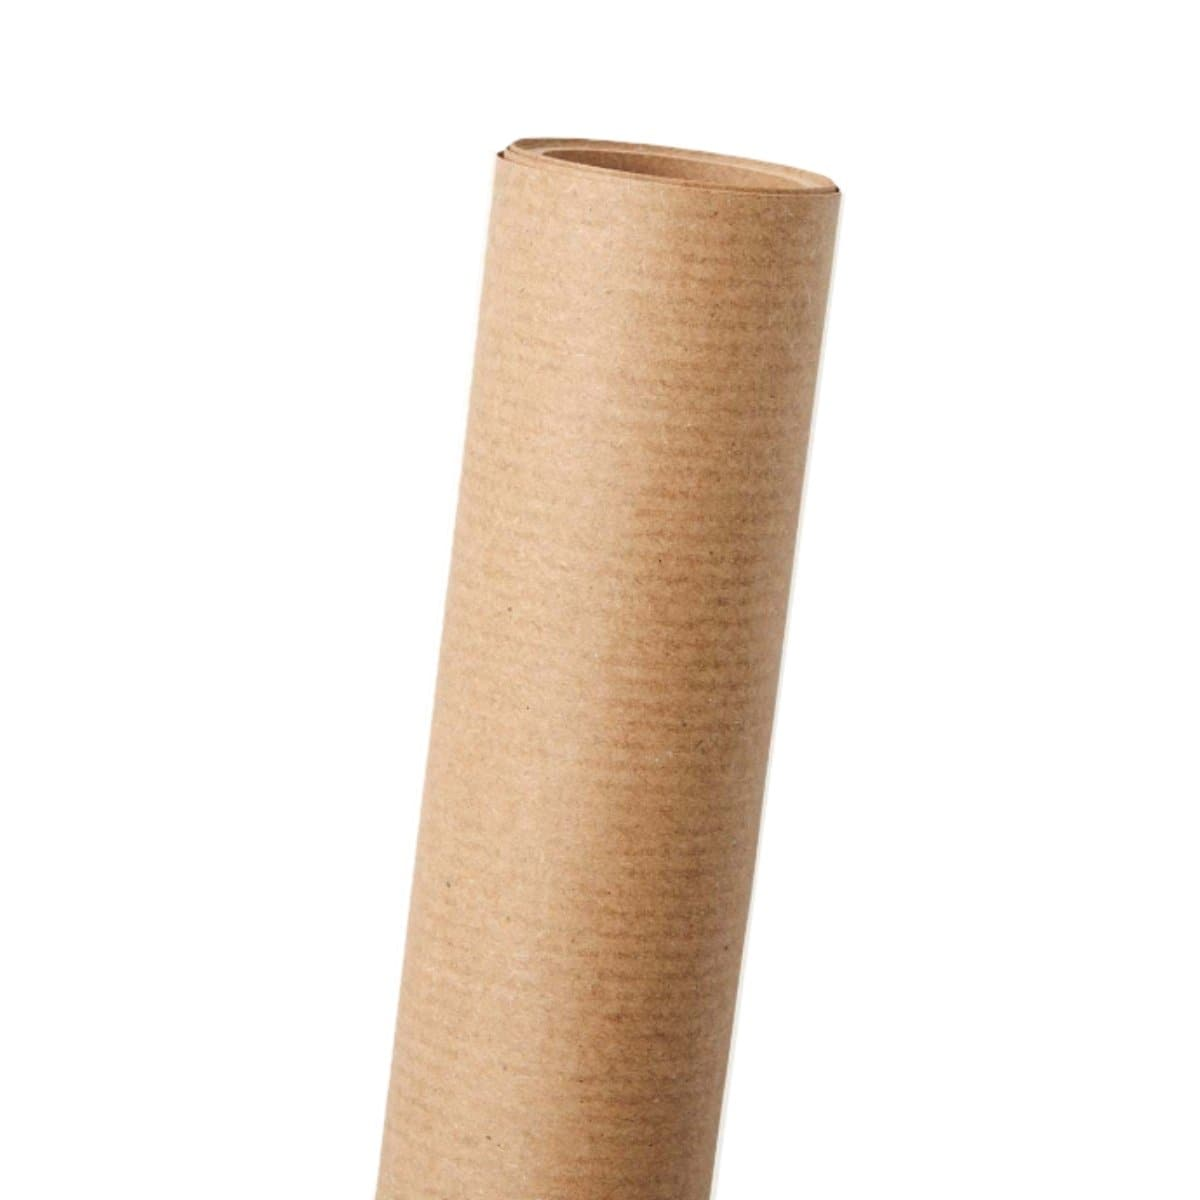 Paul Kraft Wrapping Paper, 70 x 200 cm, Brown